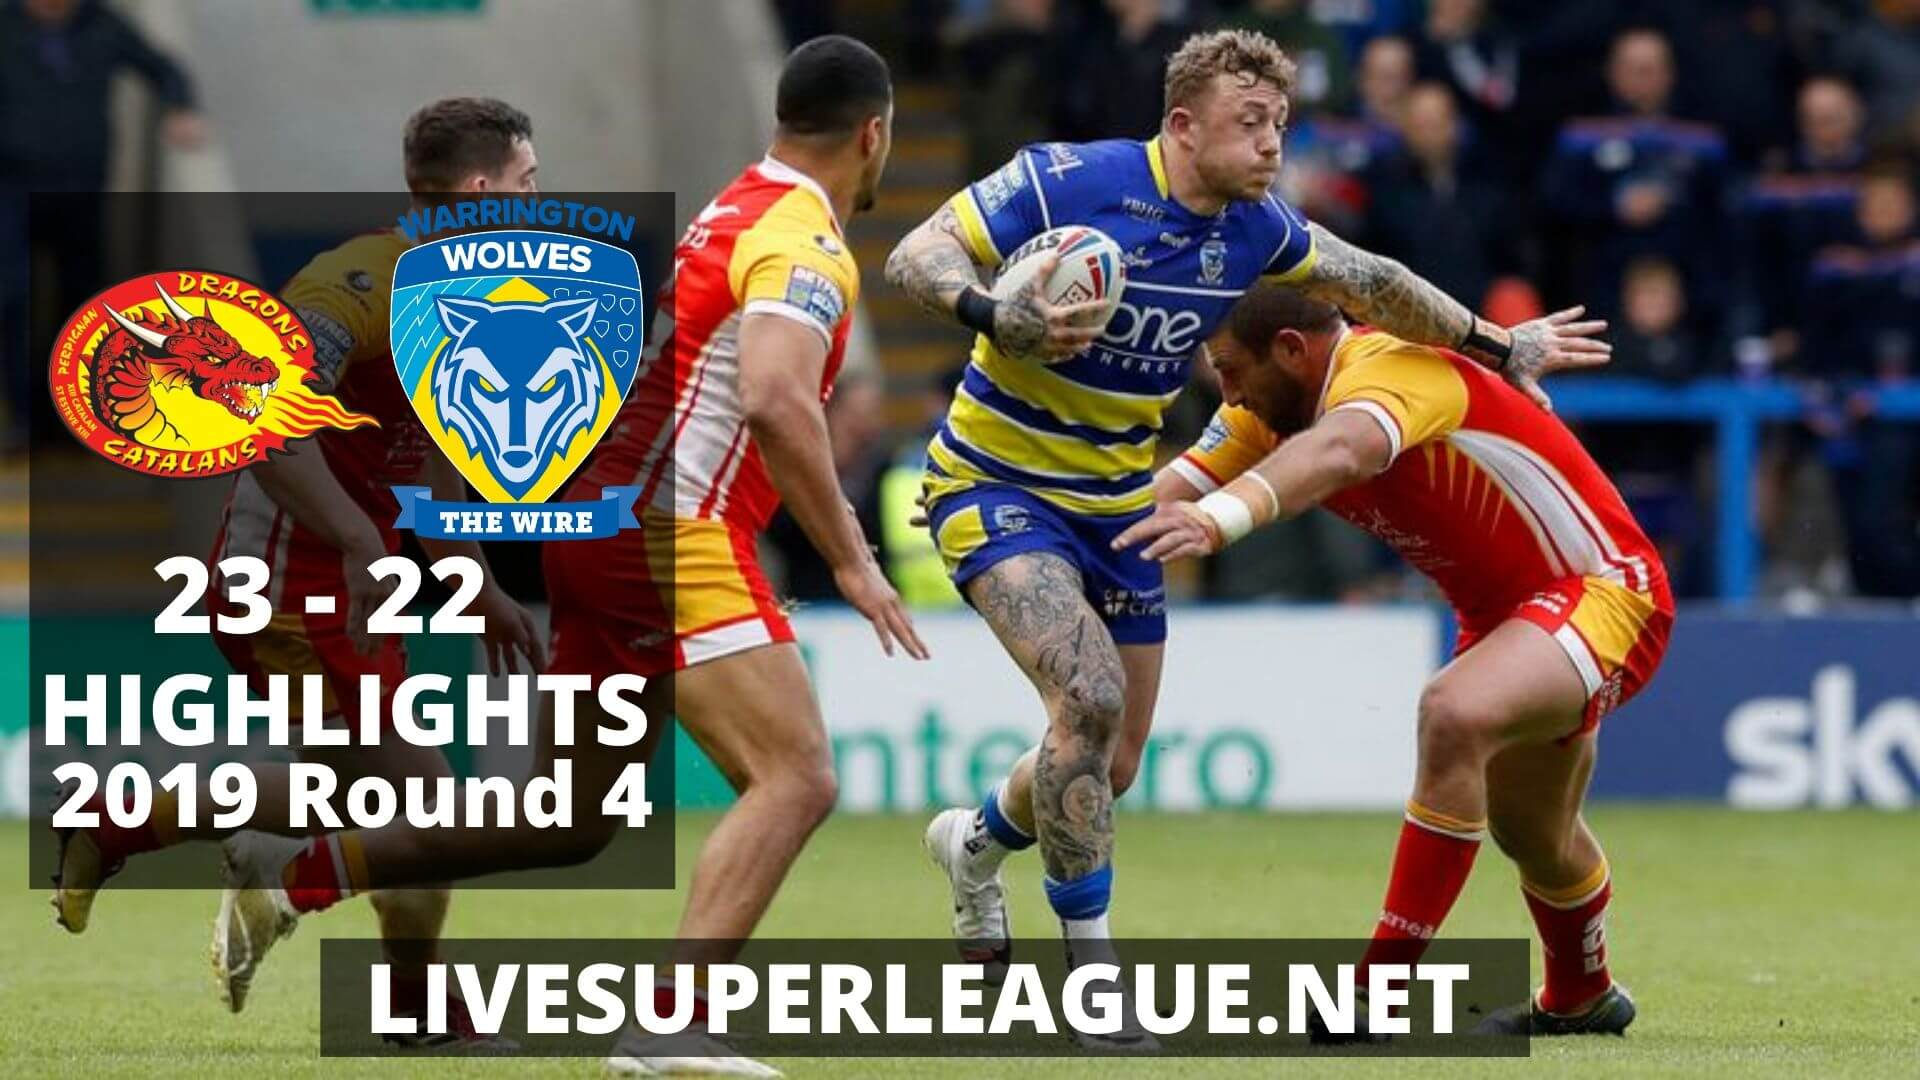 Catalans Dragons Vs Warrington Wolves Highlights 2019 Round 4